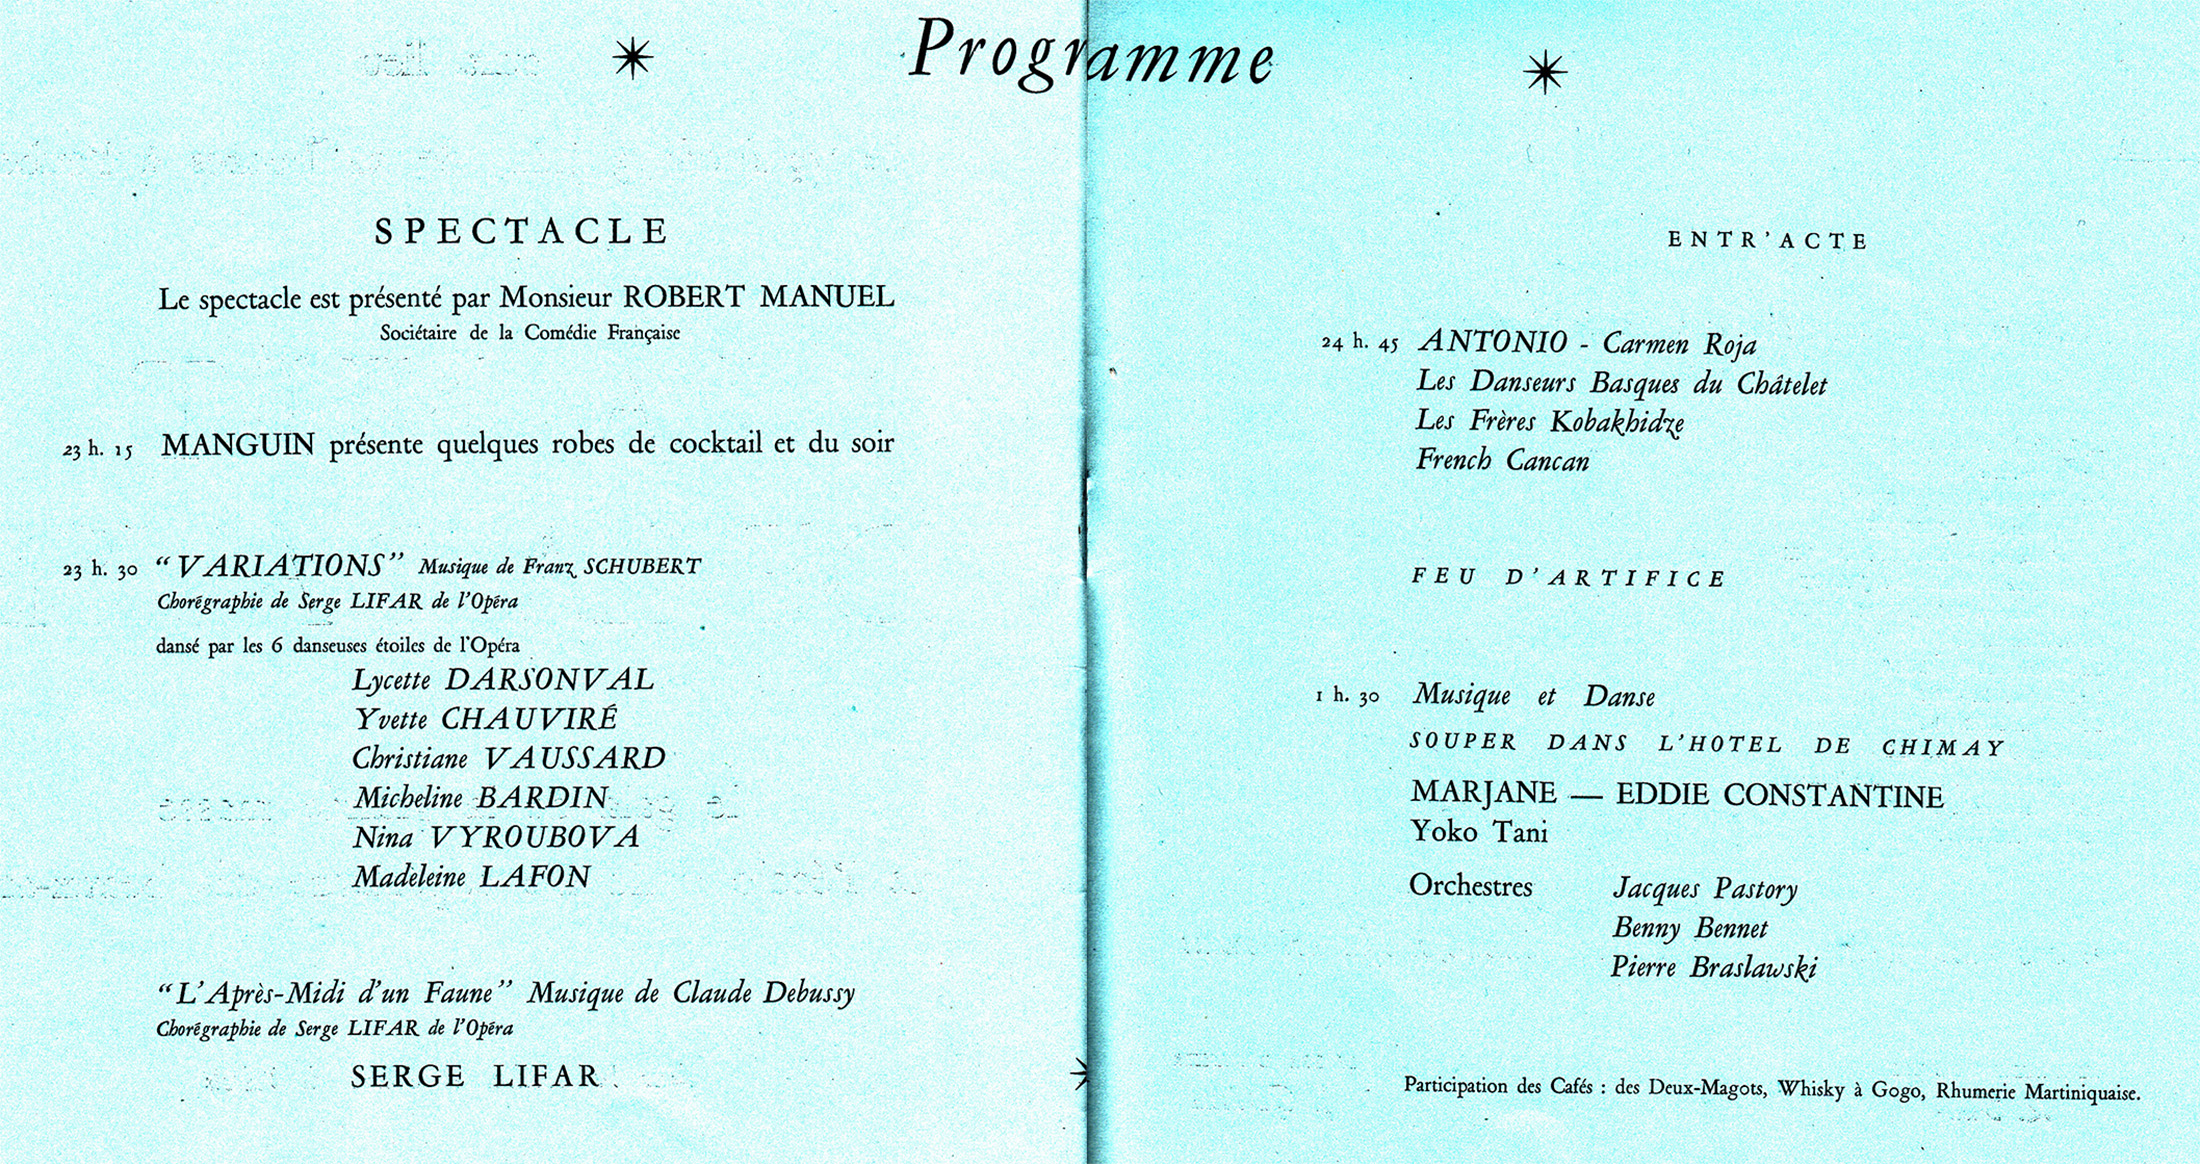 1955_PROGRAMME_Page-3-4.jpg